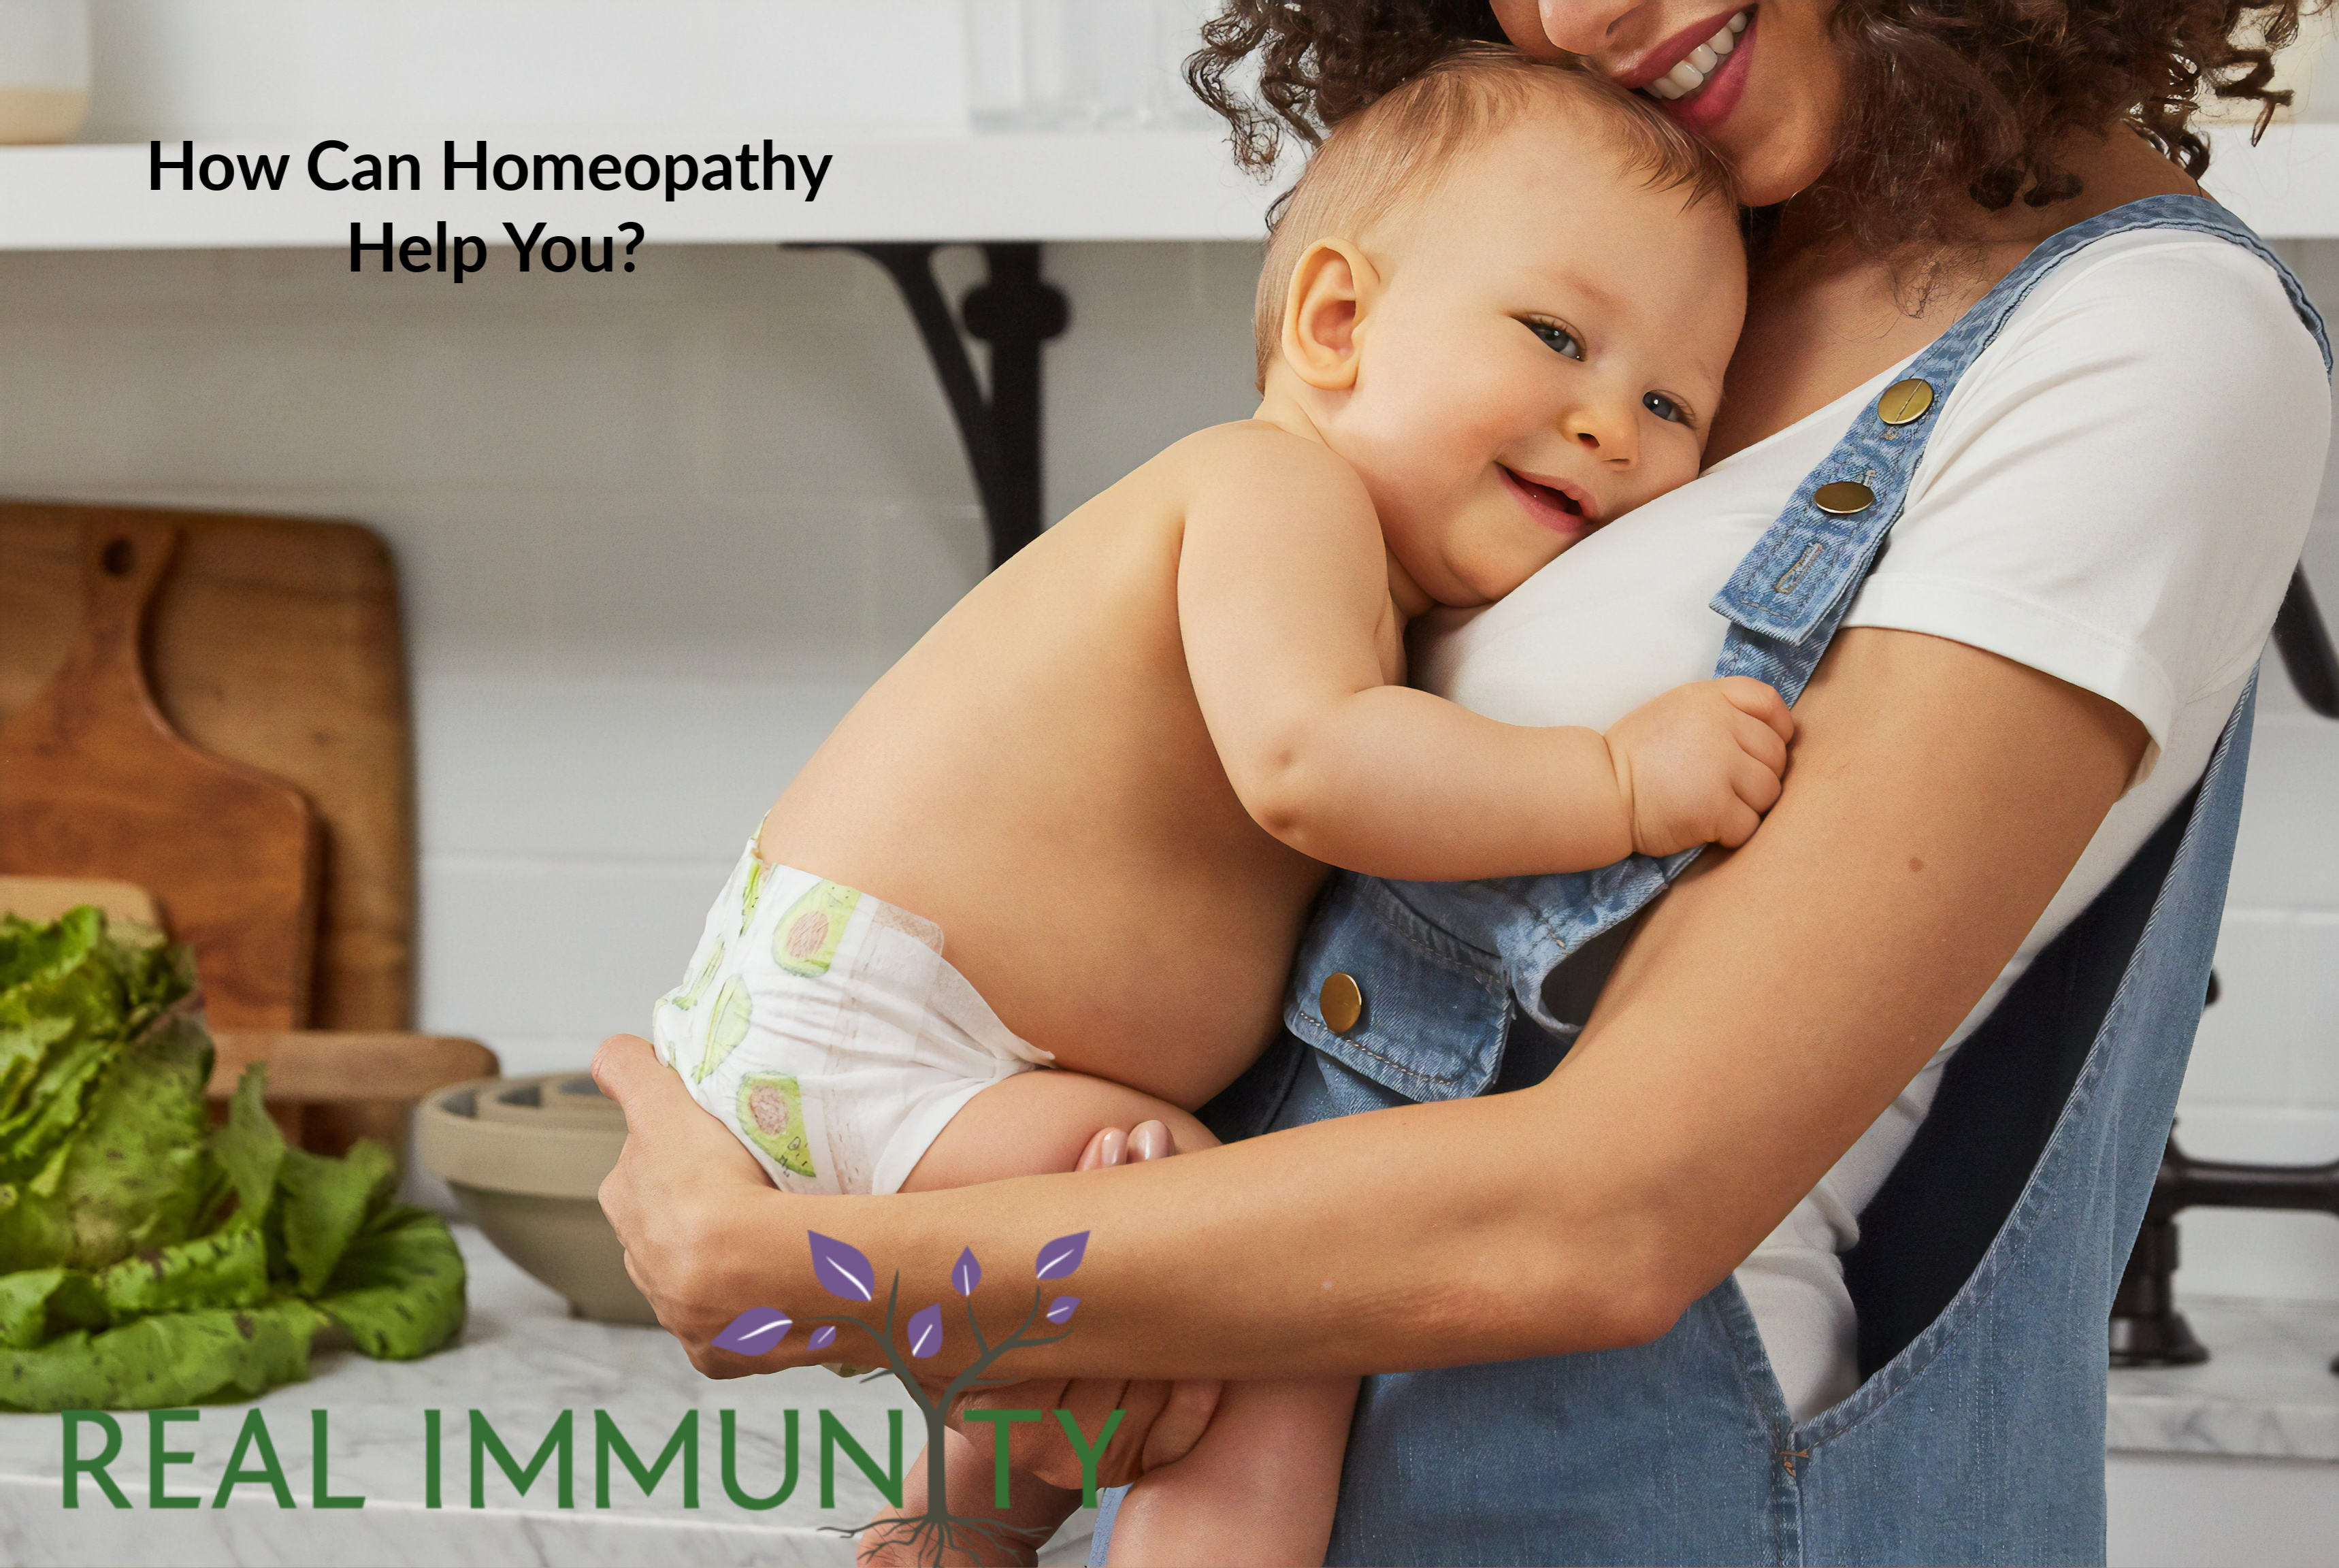 How Homeopathy Can Help You